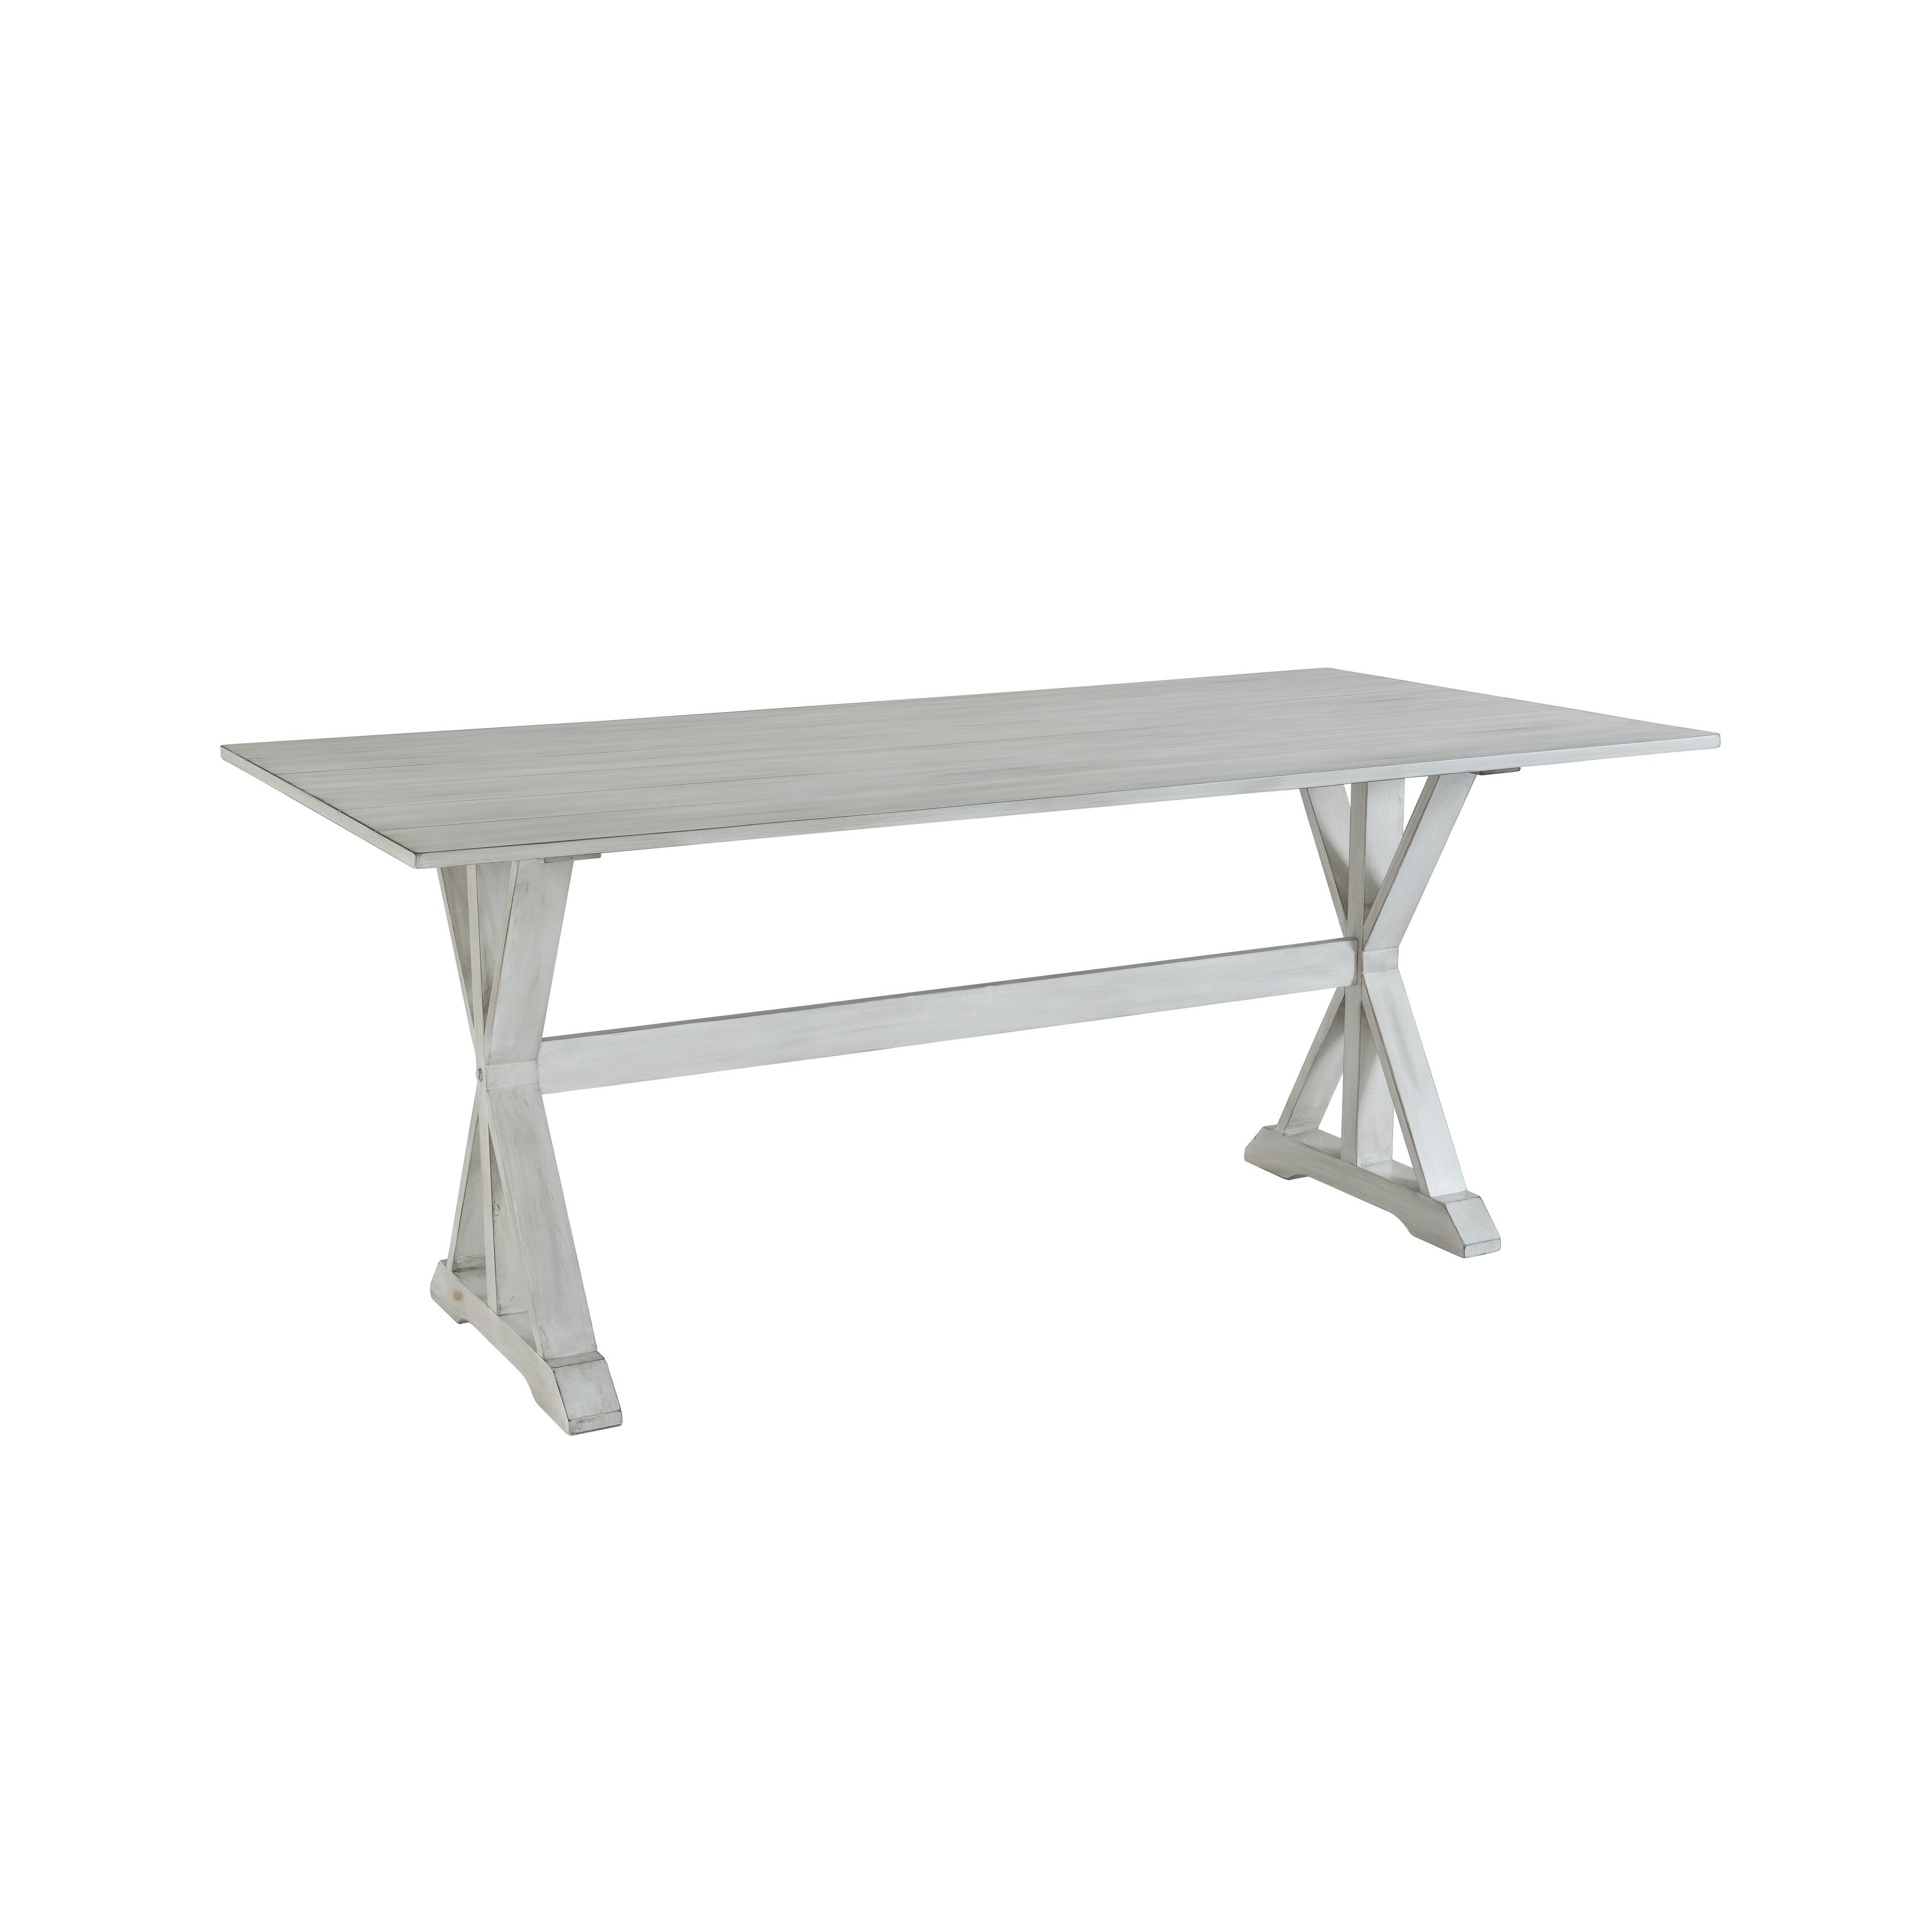 Shop Farmhouse Distressed White Trestle Dining Table Free Shipping